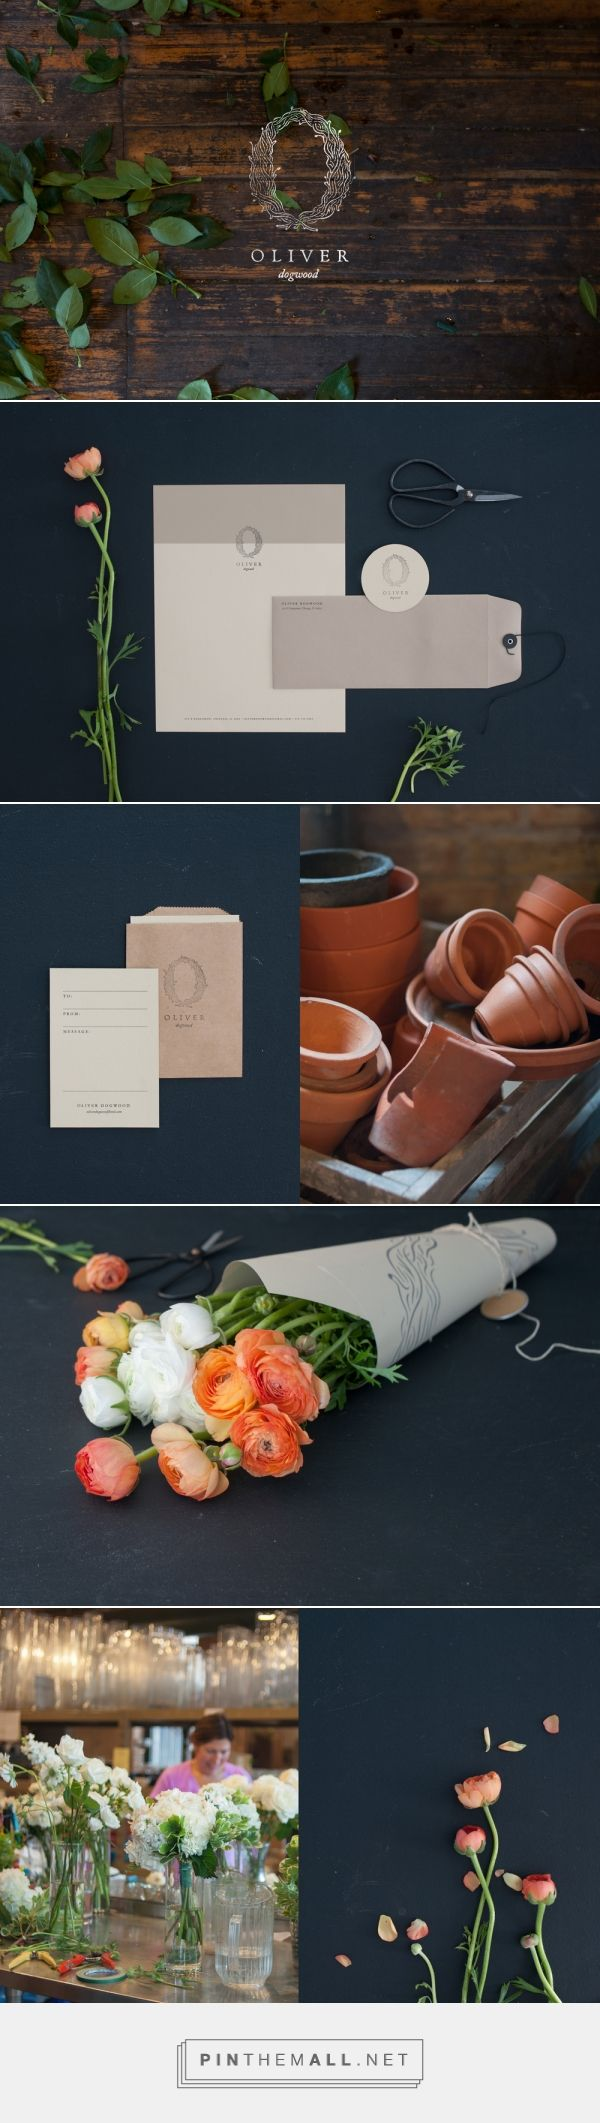 Oliver Dogwood Branding by The McQuades | Fivestar Branding – Design and Branding Agency & Inspiration Gallery